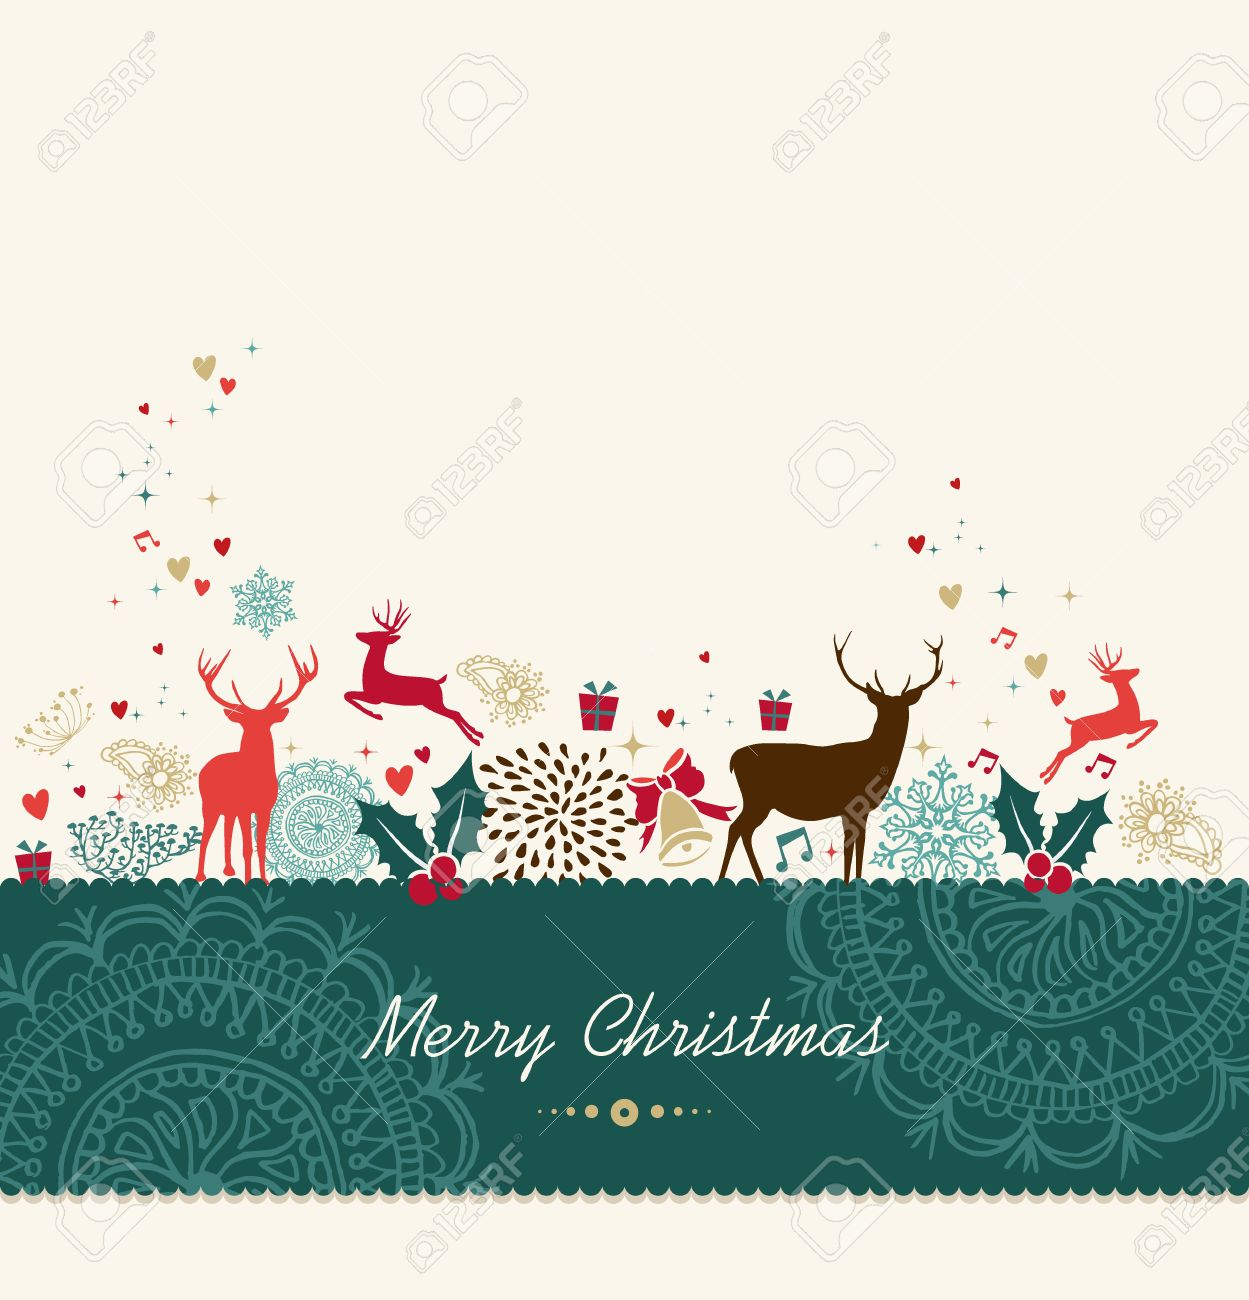 Merry Christmas Card Background With Vintage Holiday Elements ...